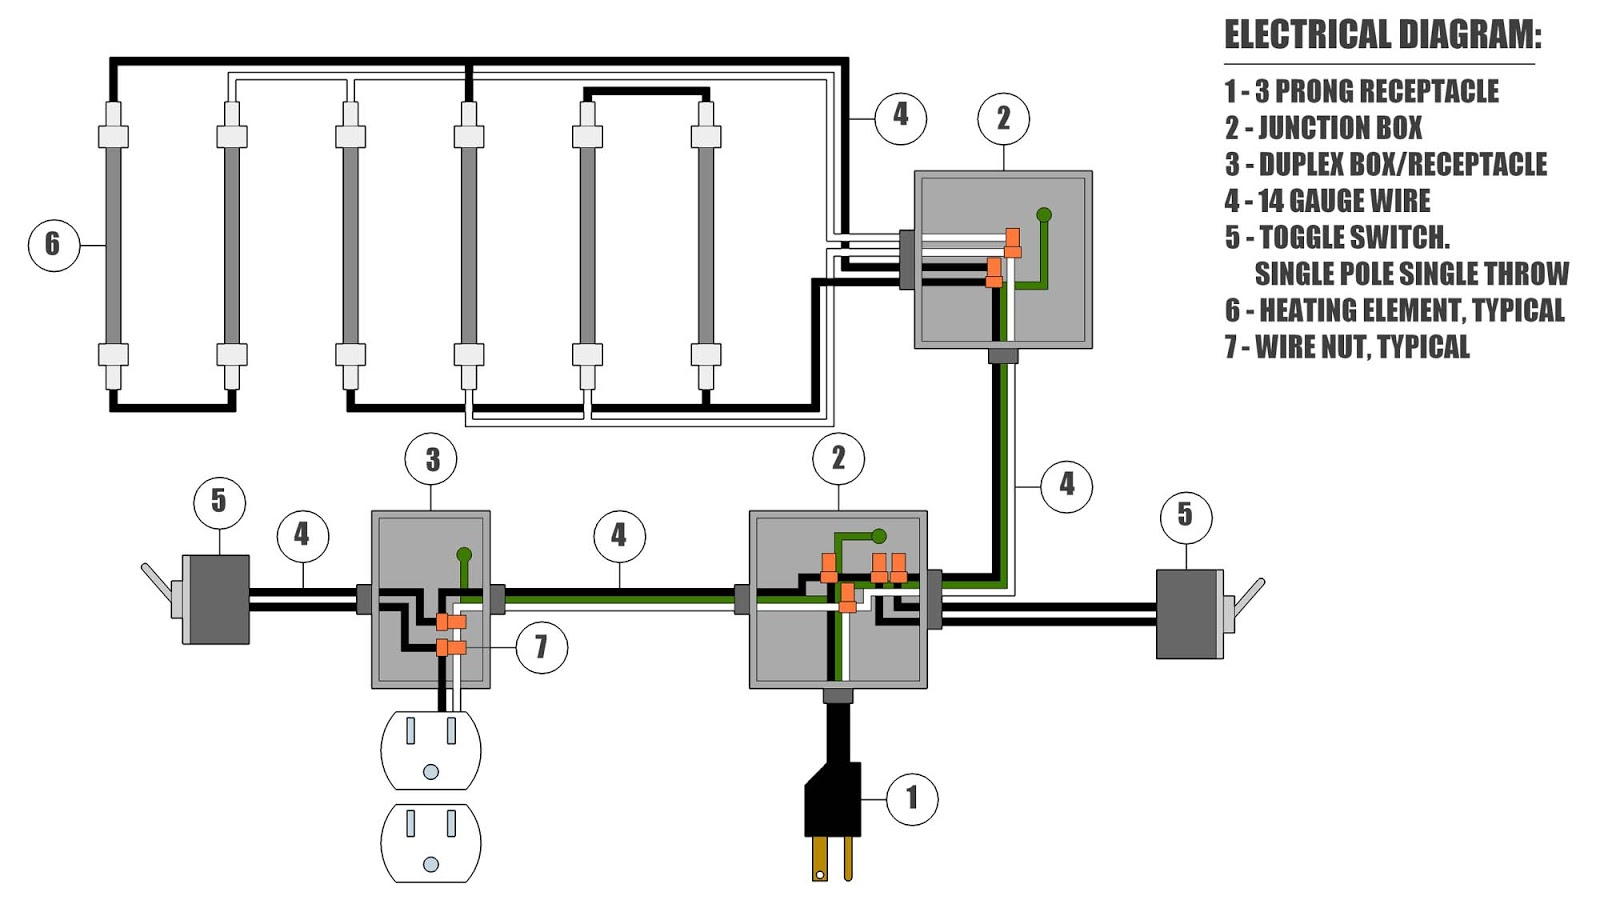 wiring diagram for electric stove outlet led downlight australia wardworks build a vacuum former